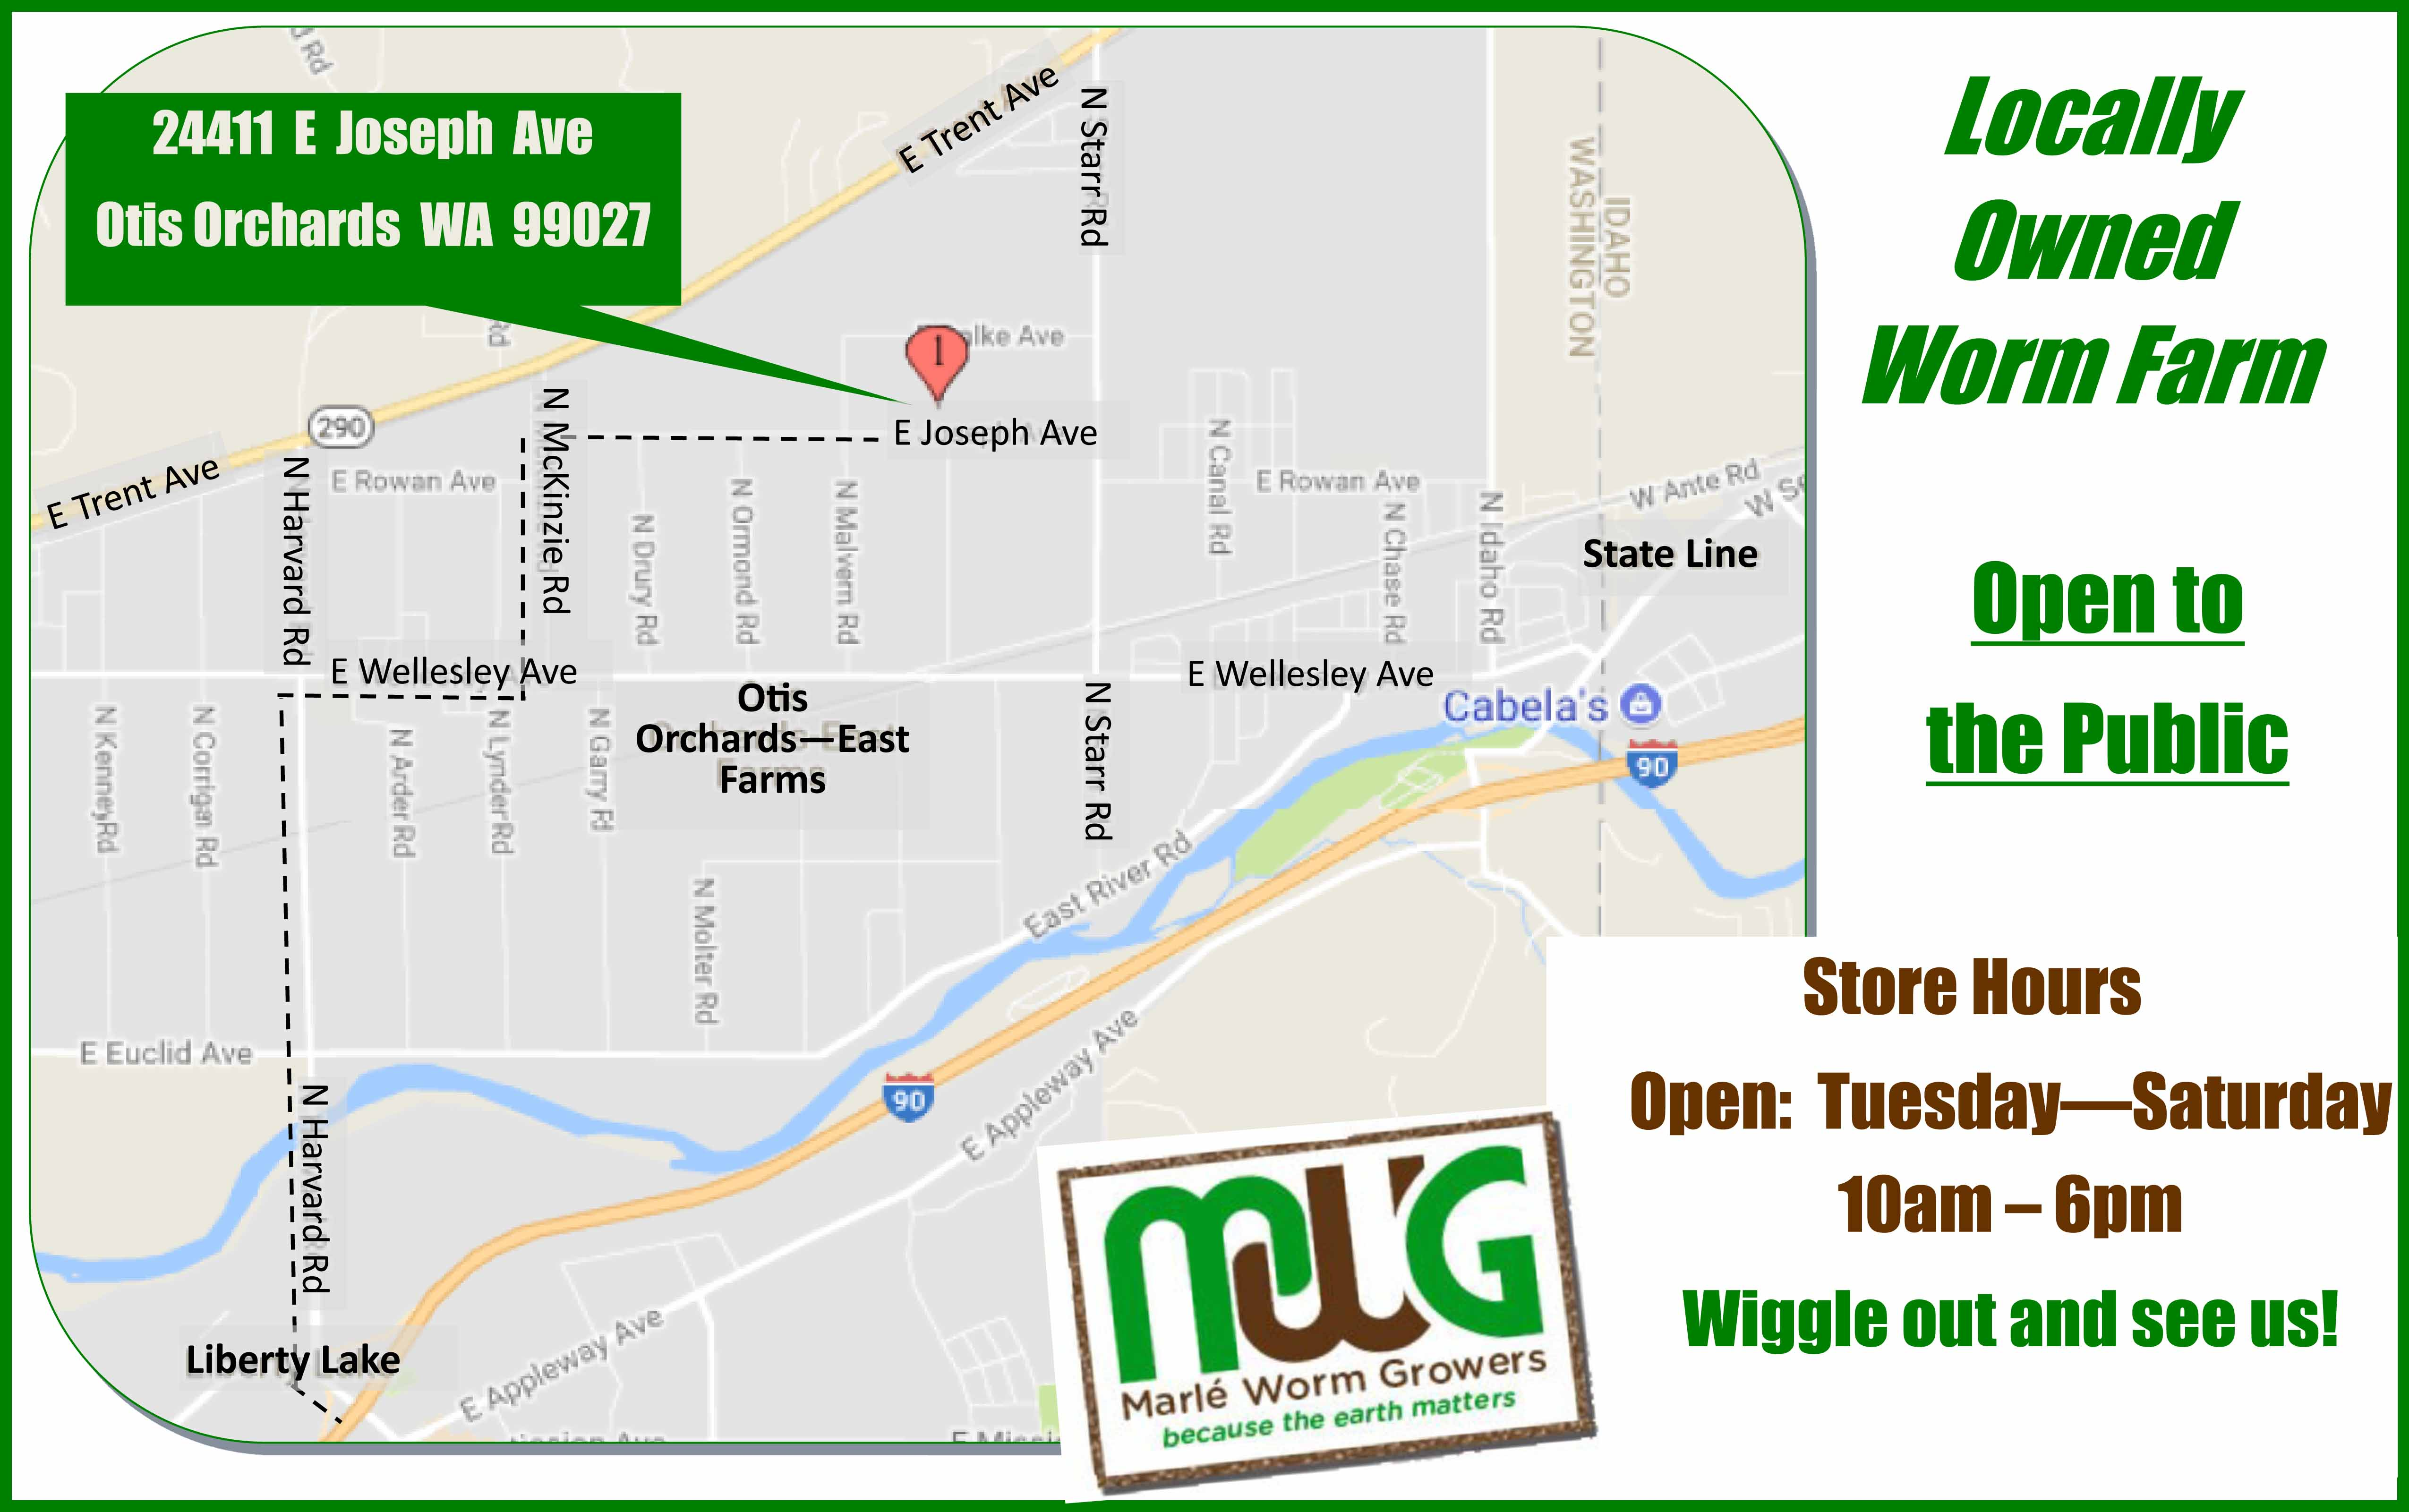 mwg-location-map-new-hours-june-chg-s.jpg